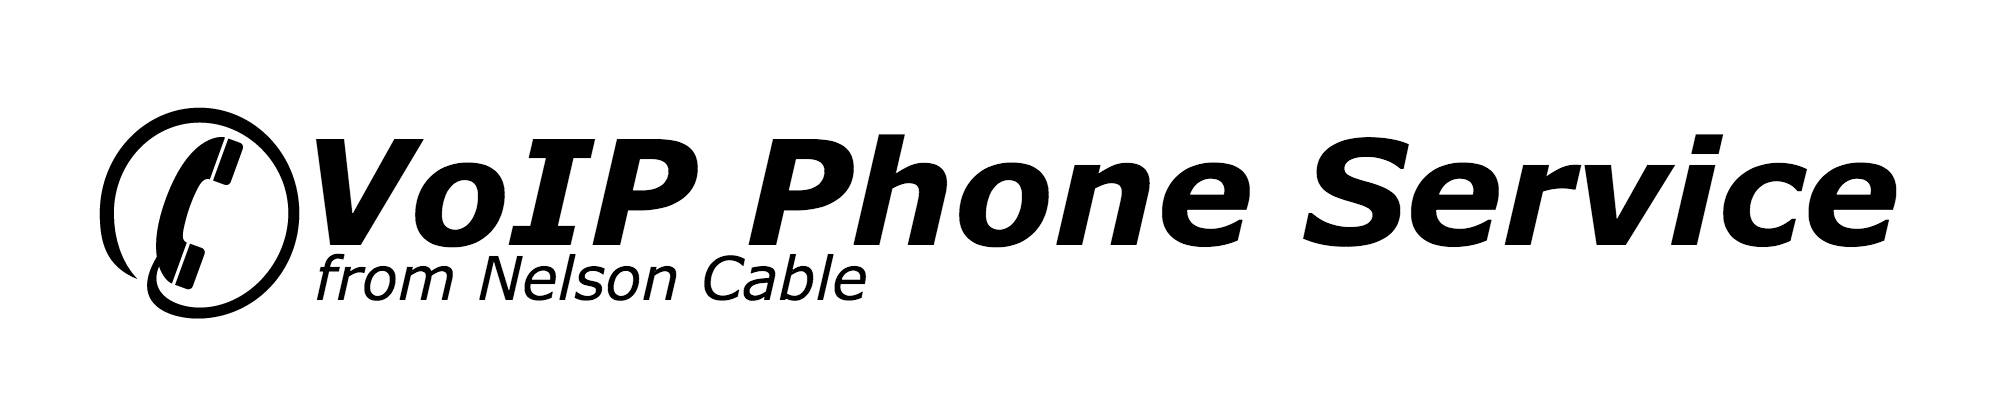 VoIP Phone Service-logo-black.png